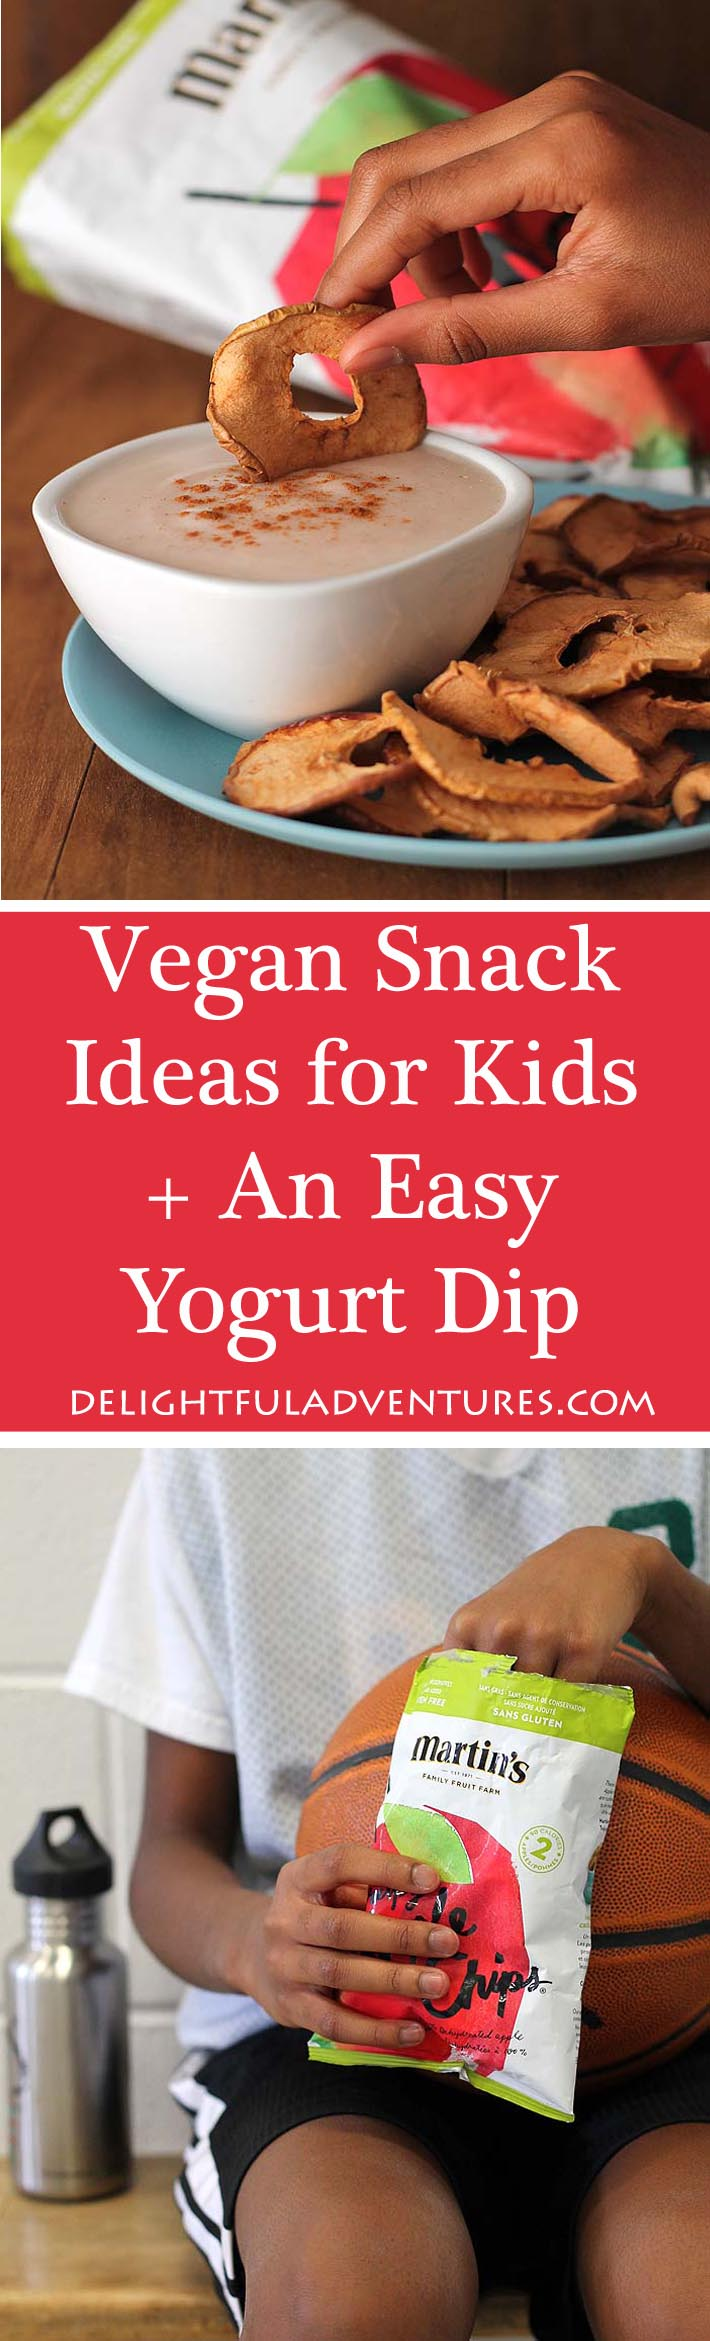 Looking for vegan Snack Ideas for Active Kids? This list will give you some good ideas and you'll also find a recipe for an Easy Vegan Yogurt Dip they'll love! #vegansnacks #veganglutenfree #vegansnackideas #snackideasforkids #martinspplechips #TrulyCrisp #PurelyFun #ad